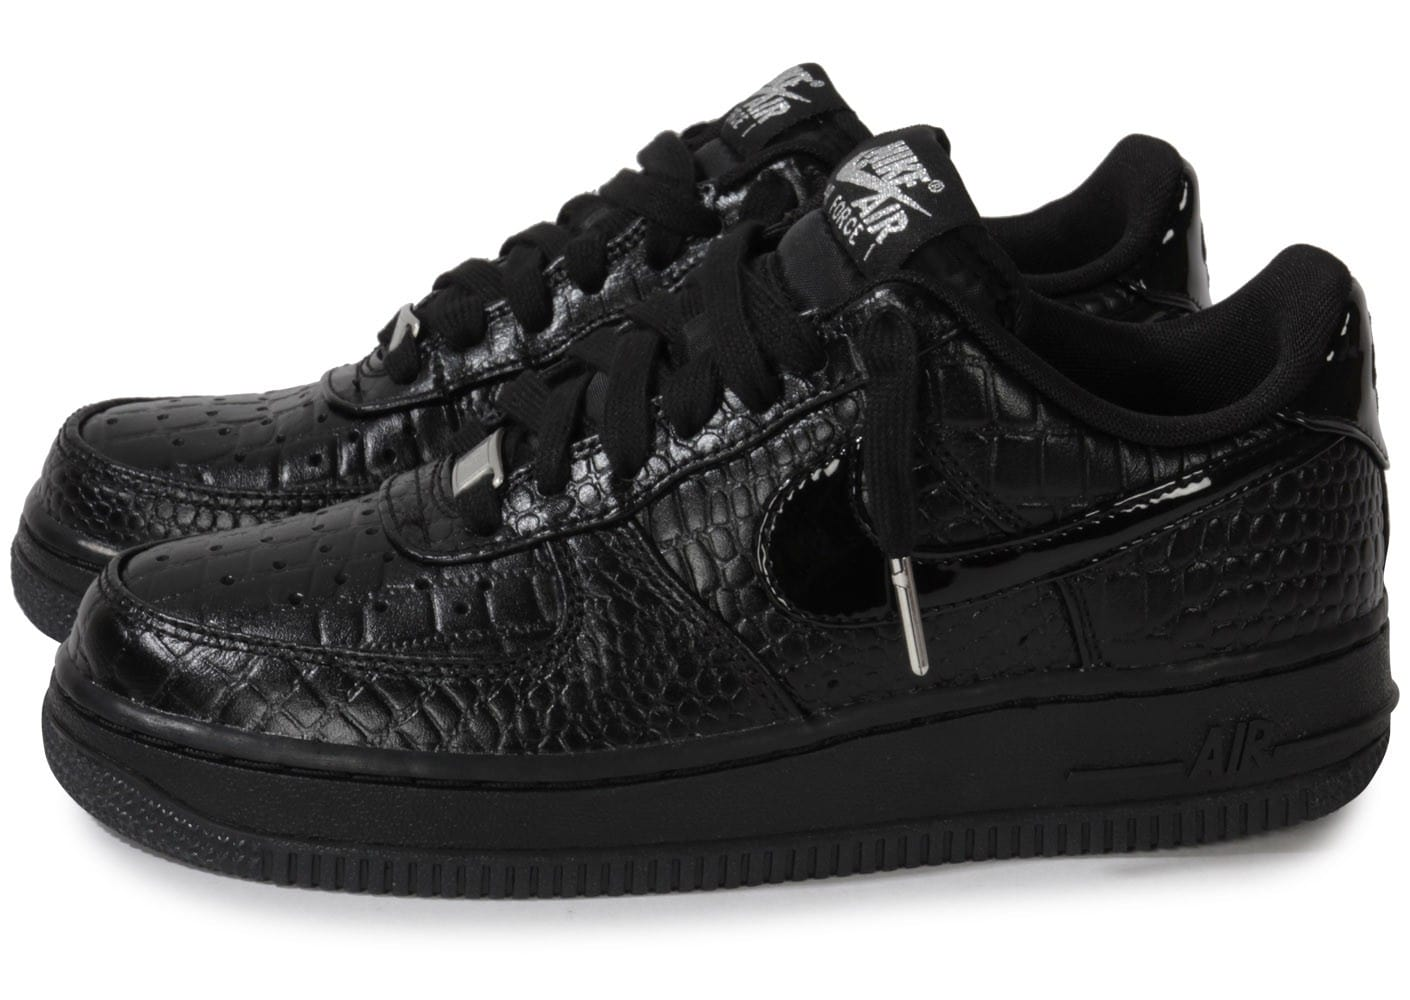 nike air force 1 low croco noir chaussures chaussures. Black Bedroom Furniture Sets. Home Design Ideas